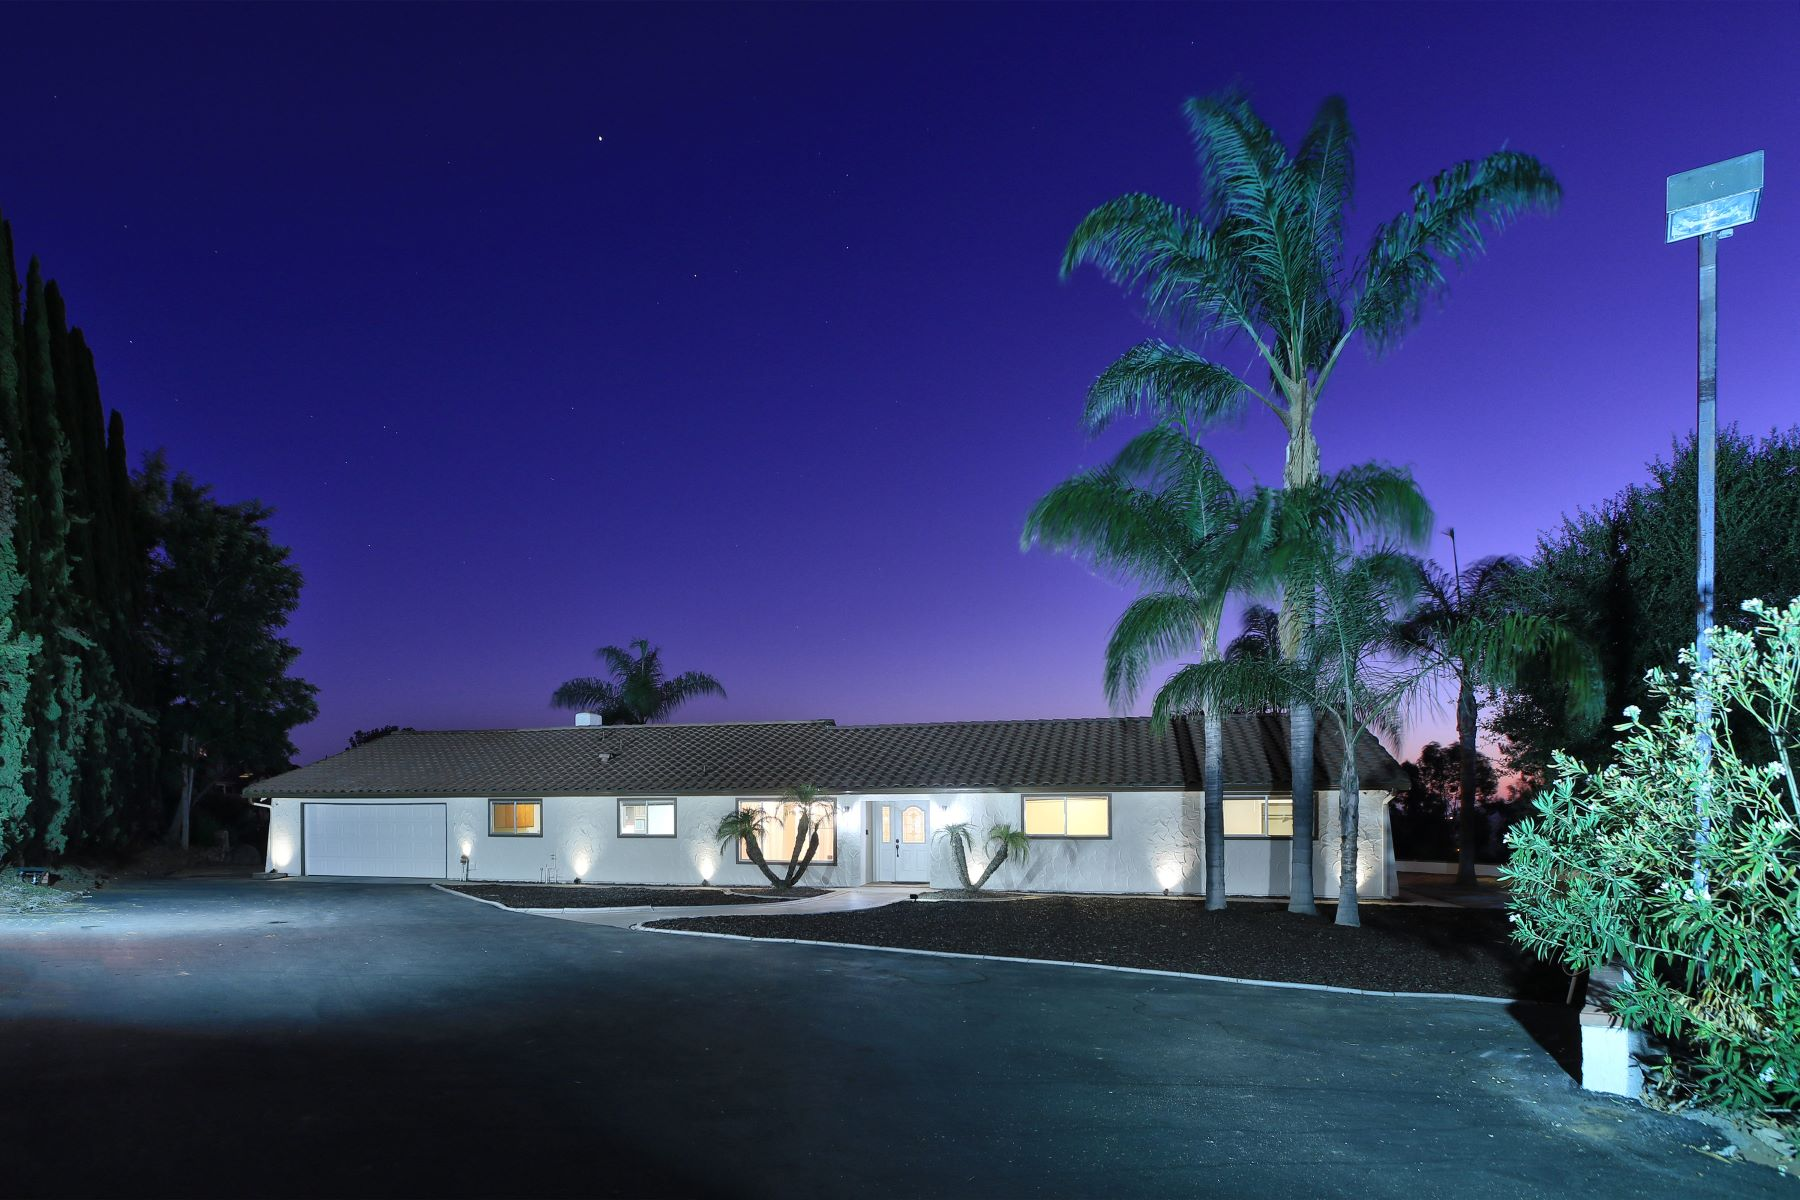 Single Family Homes for Active at Orchard View - Poway 14957 Orchard View Drive Poway, California 92064 United States